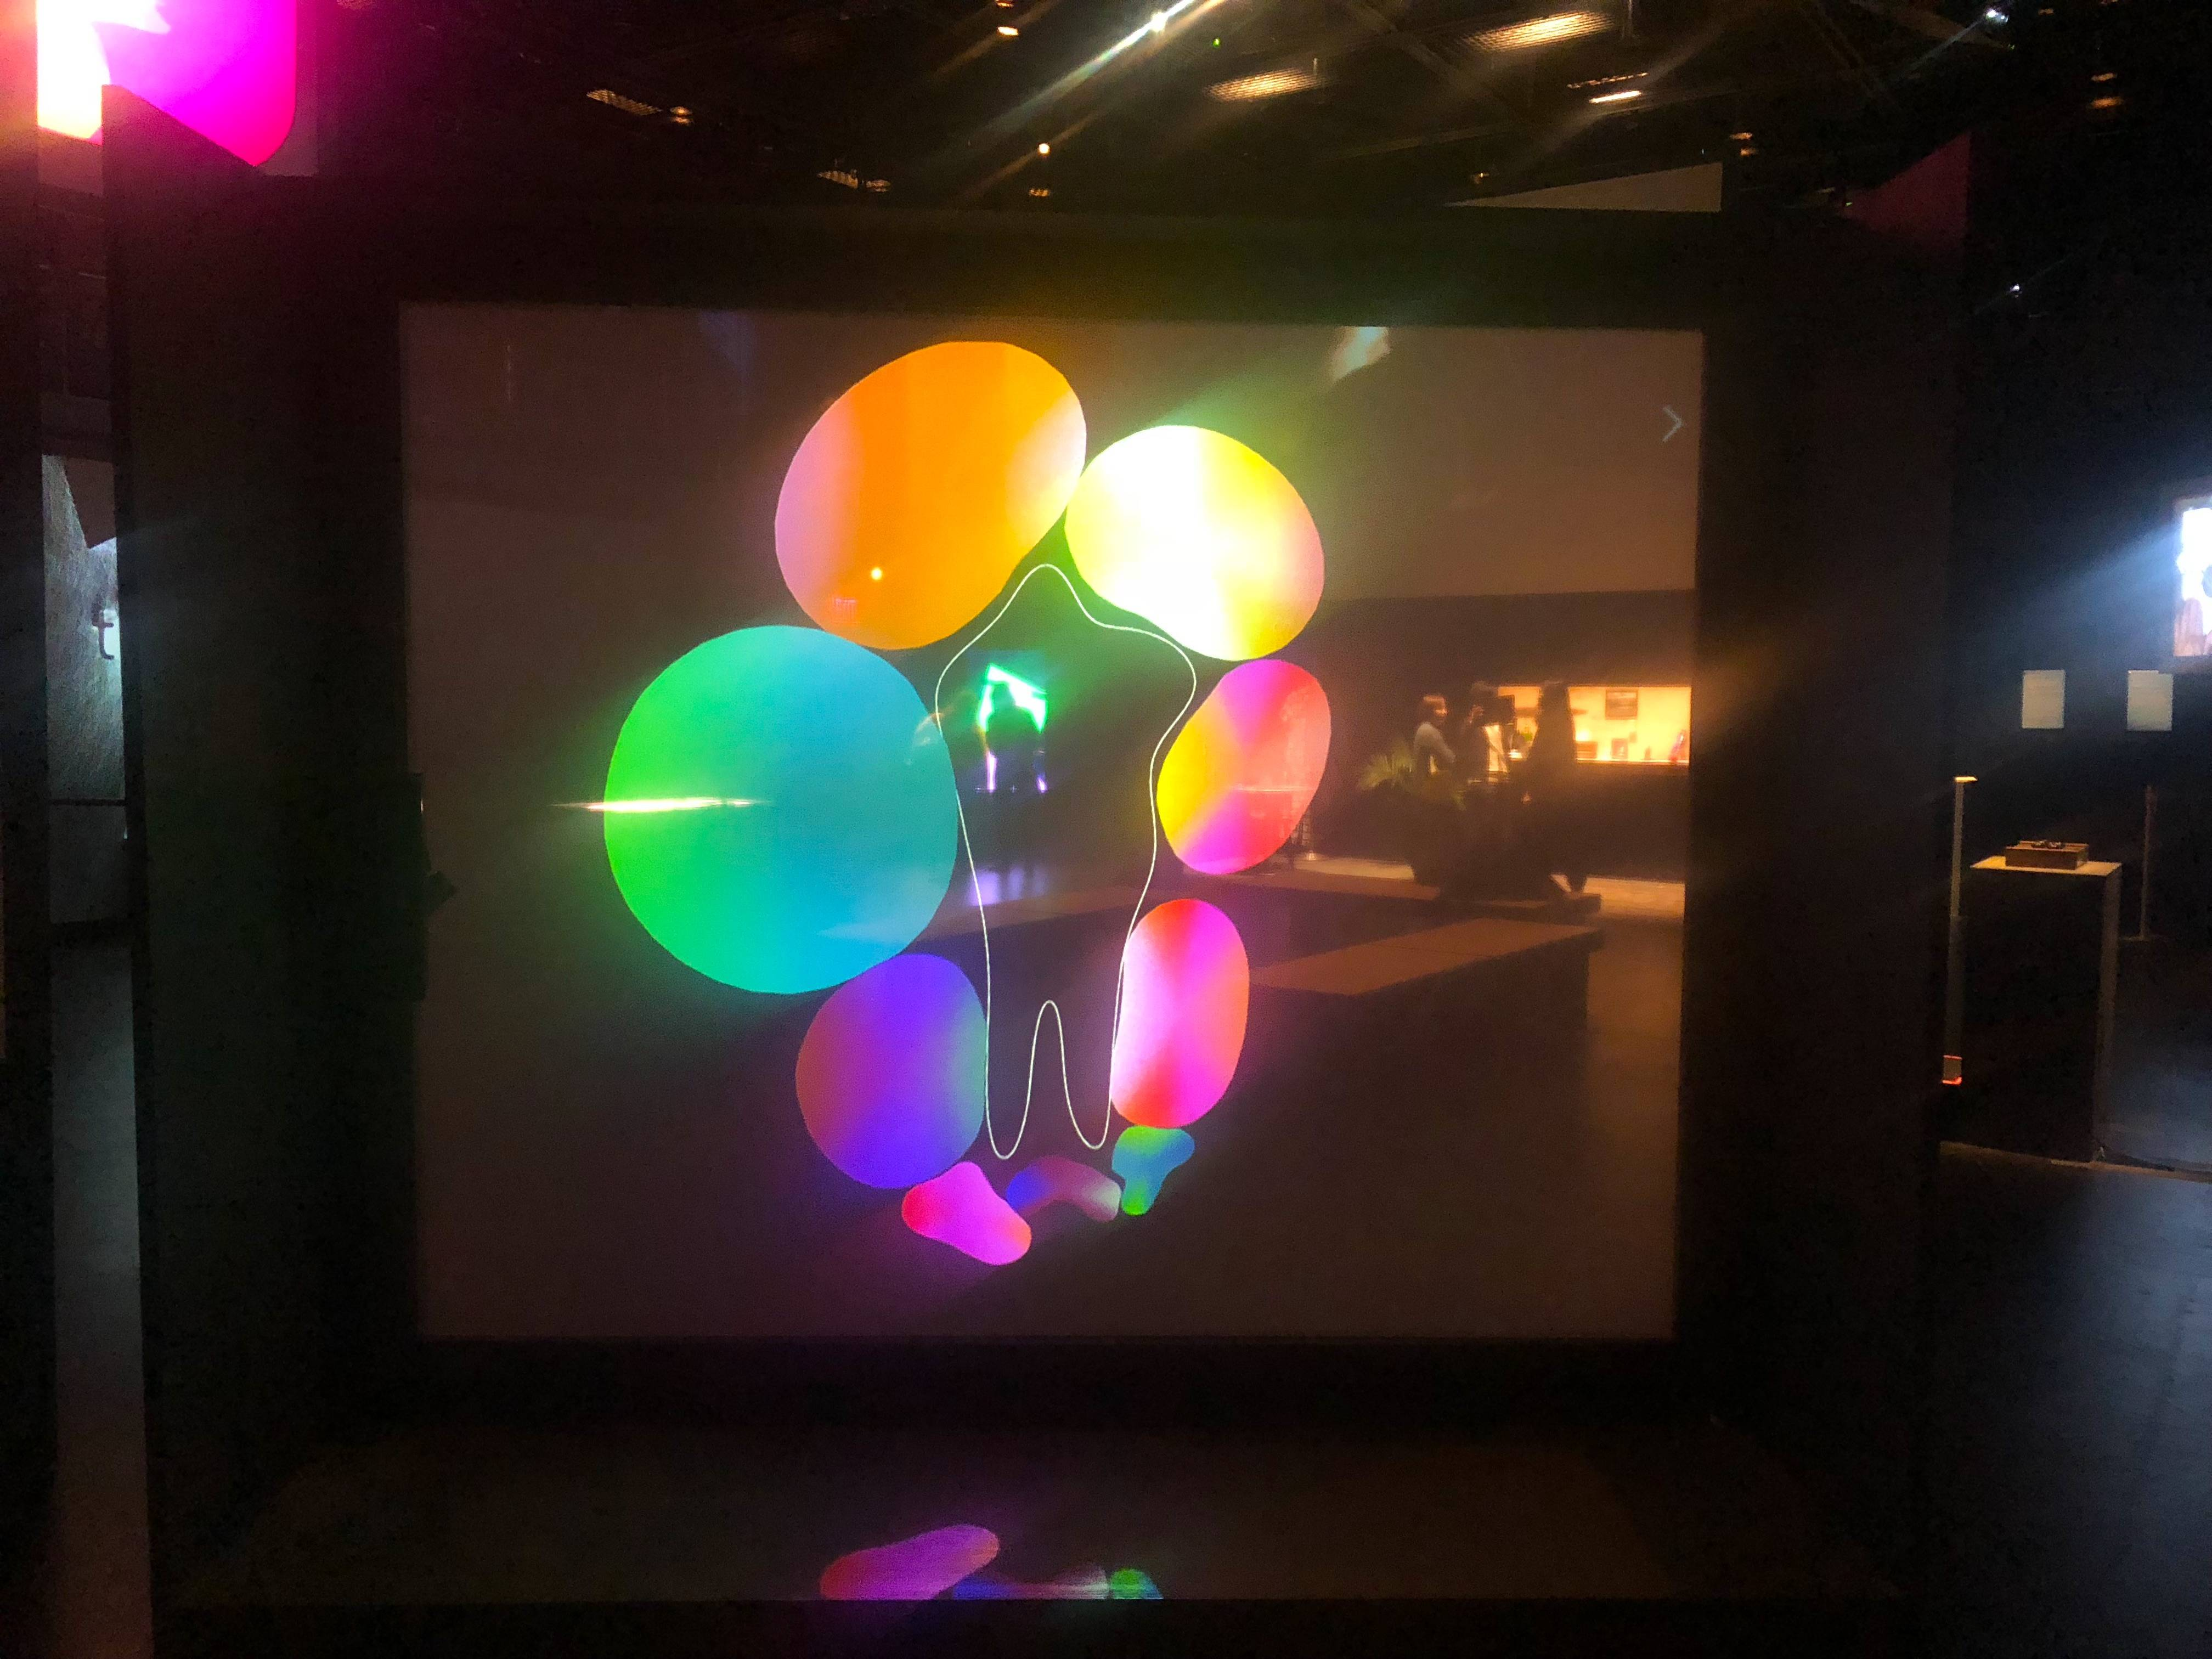 Brooklynites can now explore Zach Lieberman and Molmol Kuo's interactive art installations, utilizing augmented reality and coding, at BAM's Teknopolis